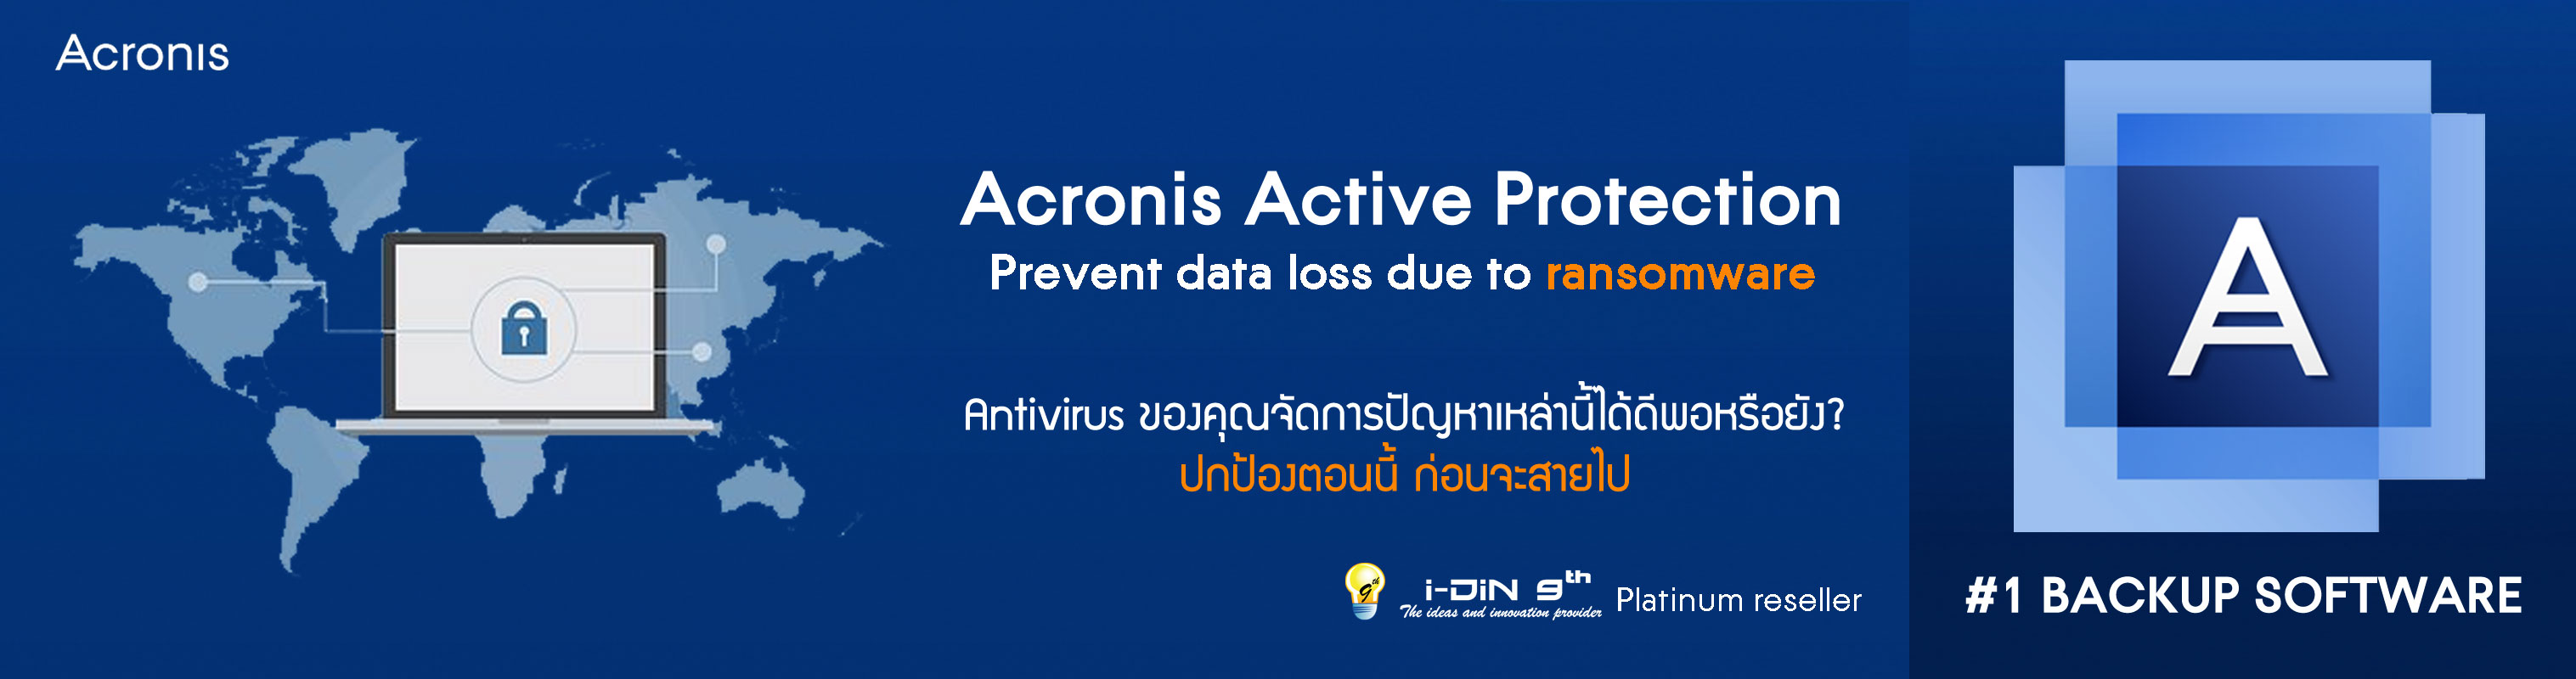 Acronis Ransomware Banner